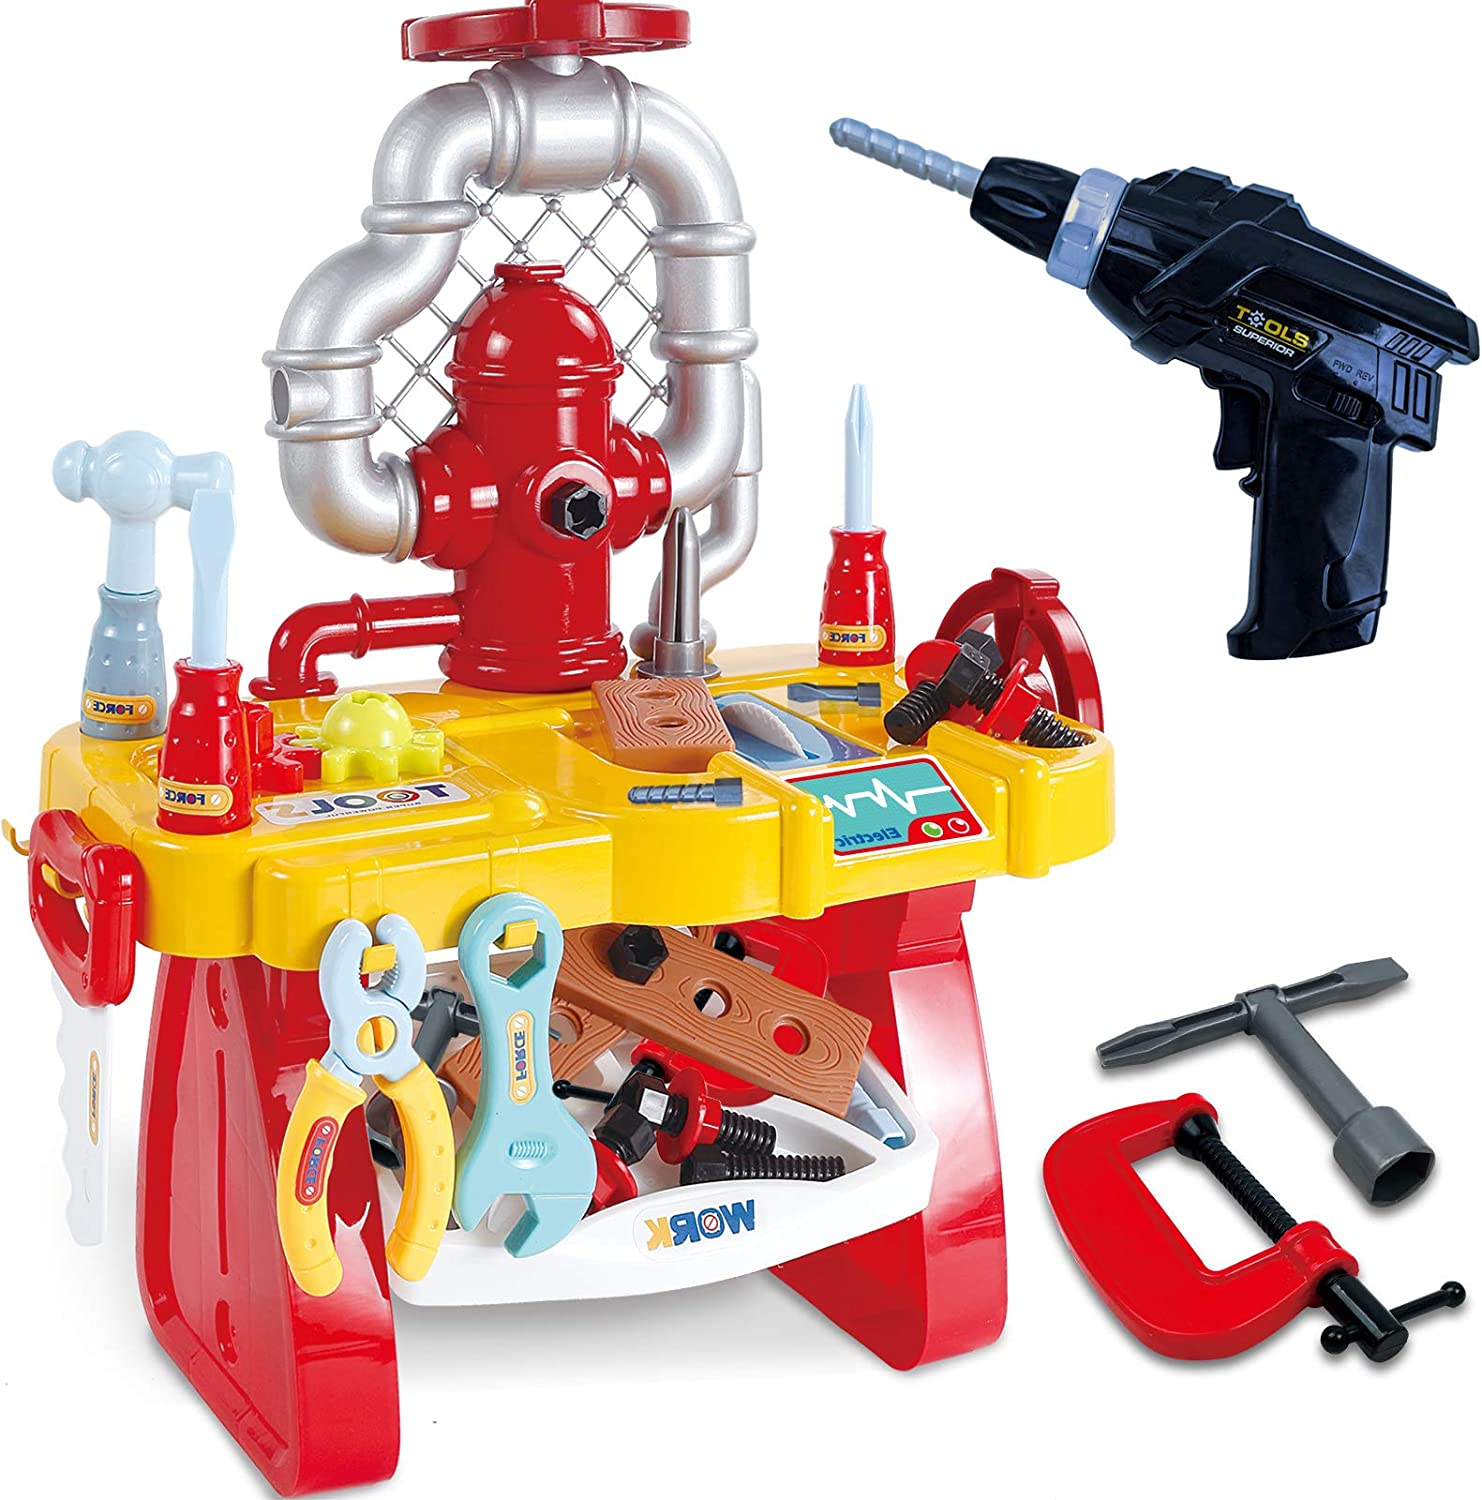 Gifts2U Pretend Play Workbench with Electric Drill, Kids Tool Bench Play Set STEM Building Puzzles Learning Tool Toy Kit for Toddlers Age 2-4 Gifts